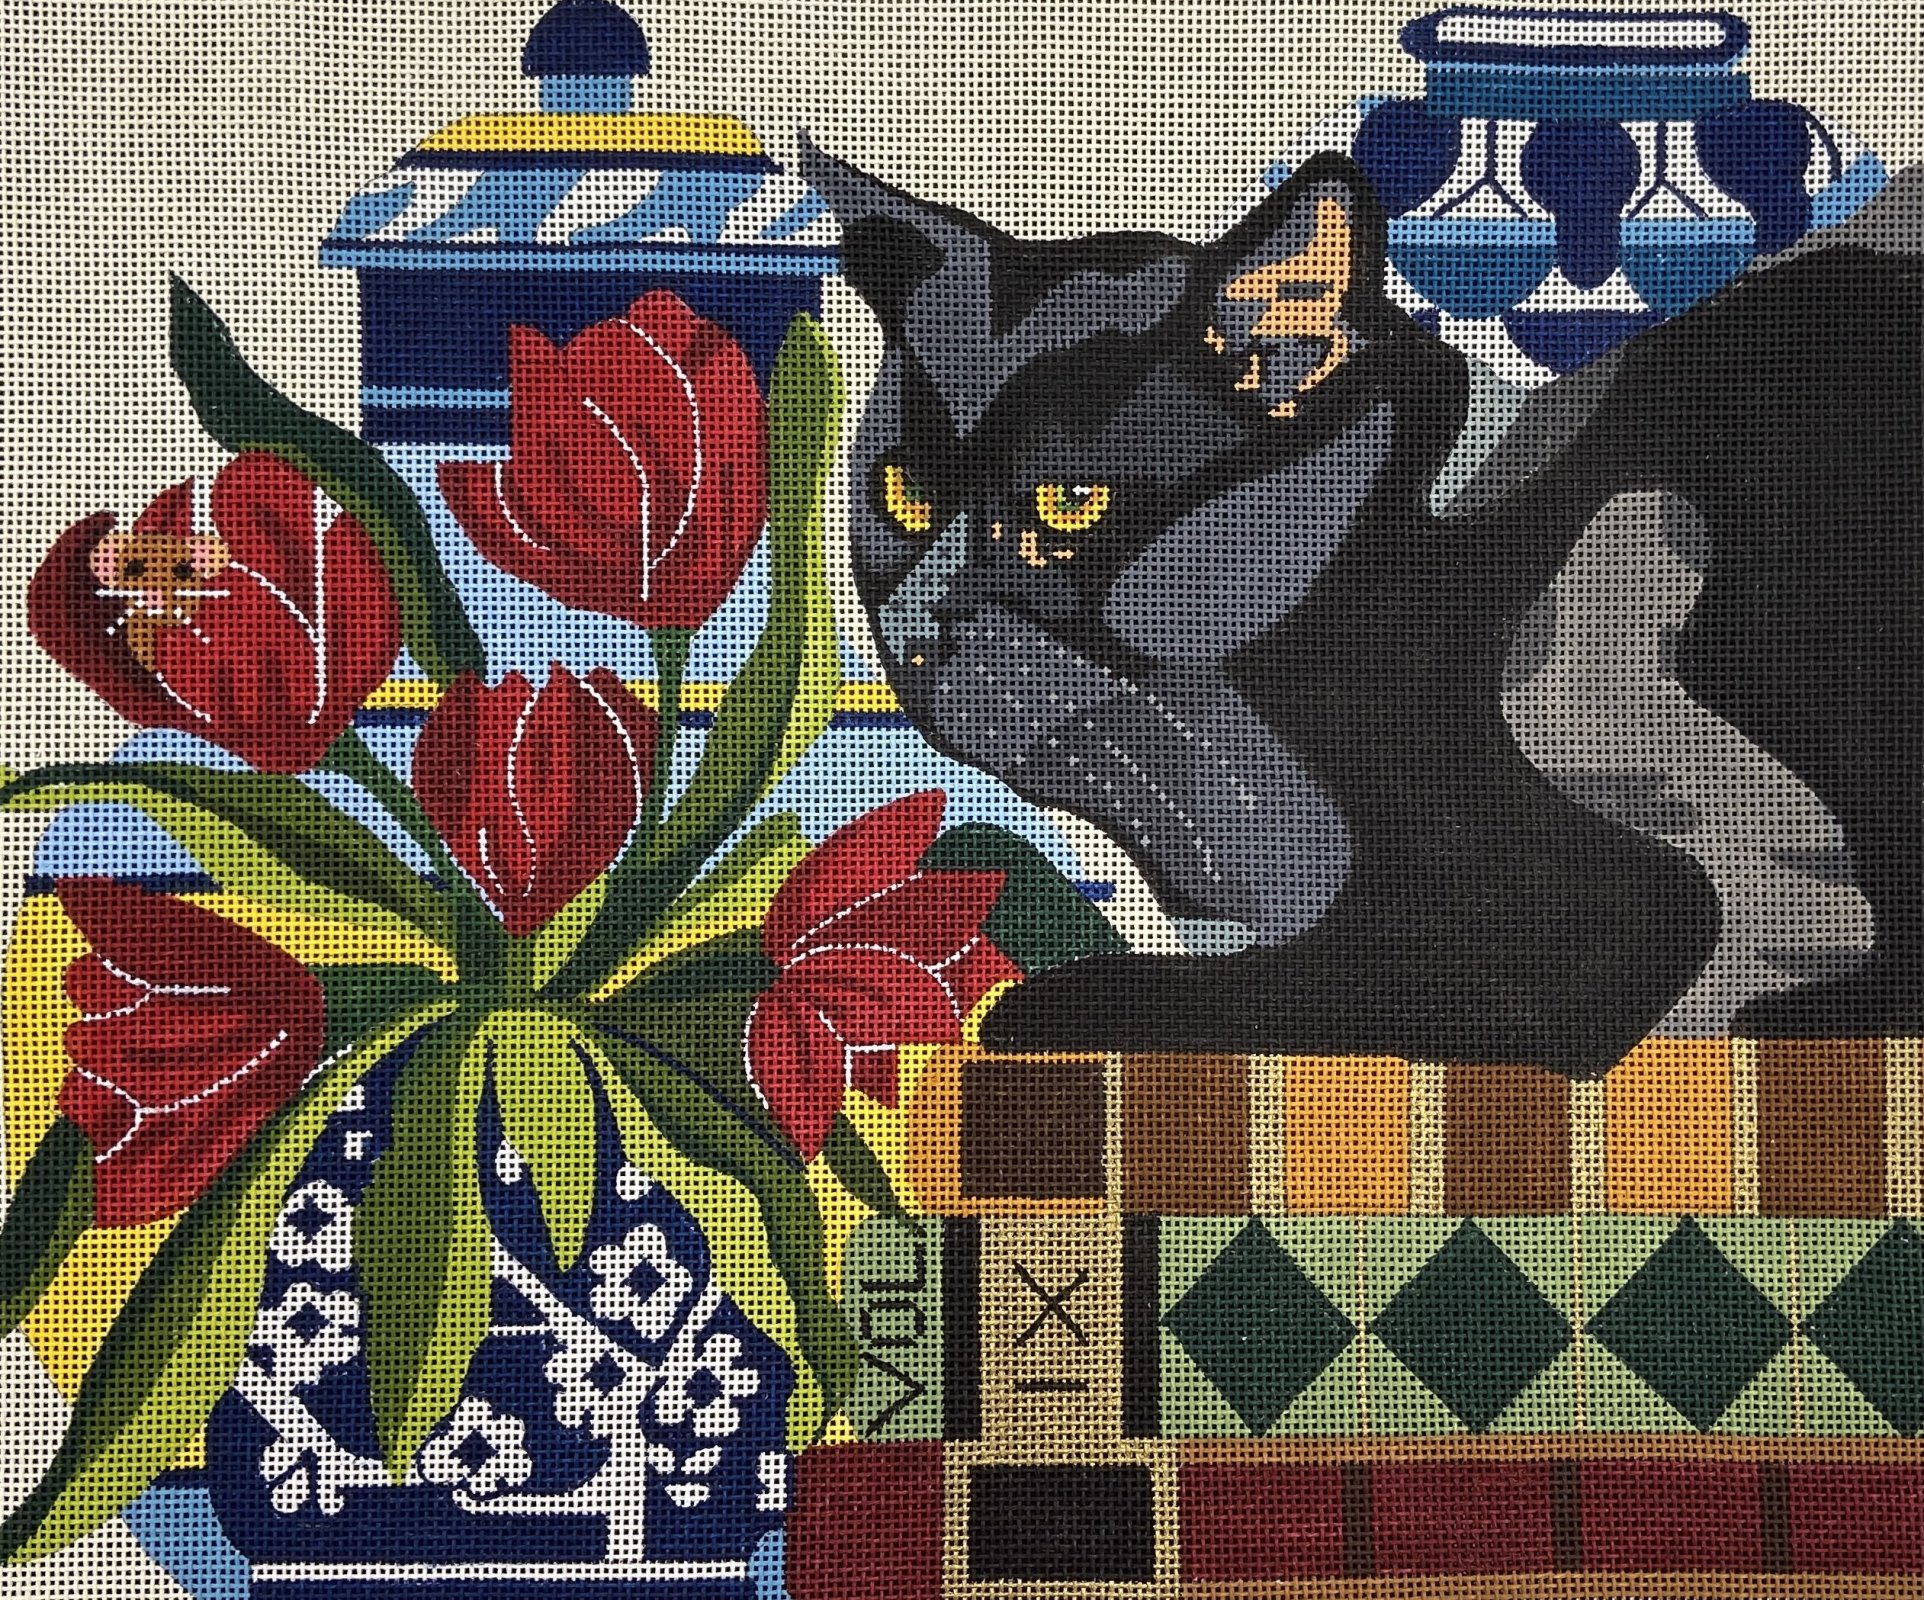 MPC01 Black Cat with Tulips and Books Melissa Prince